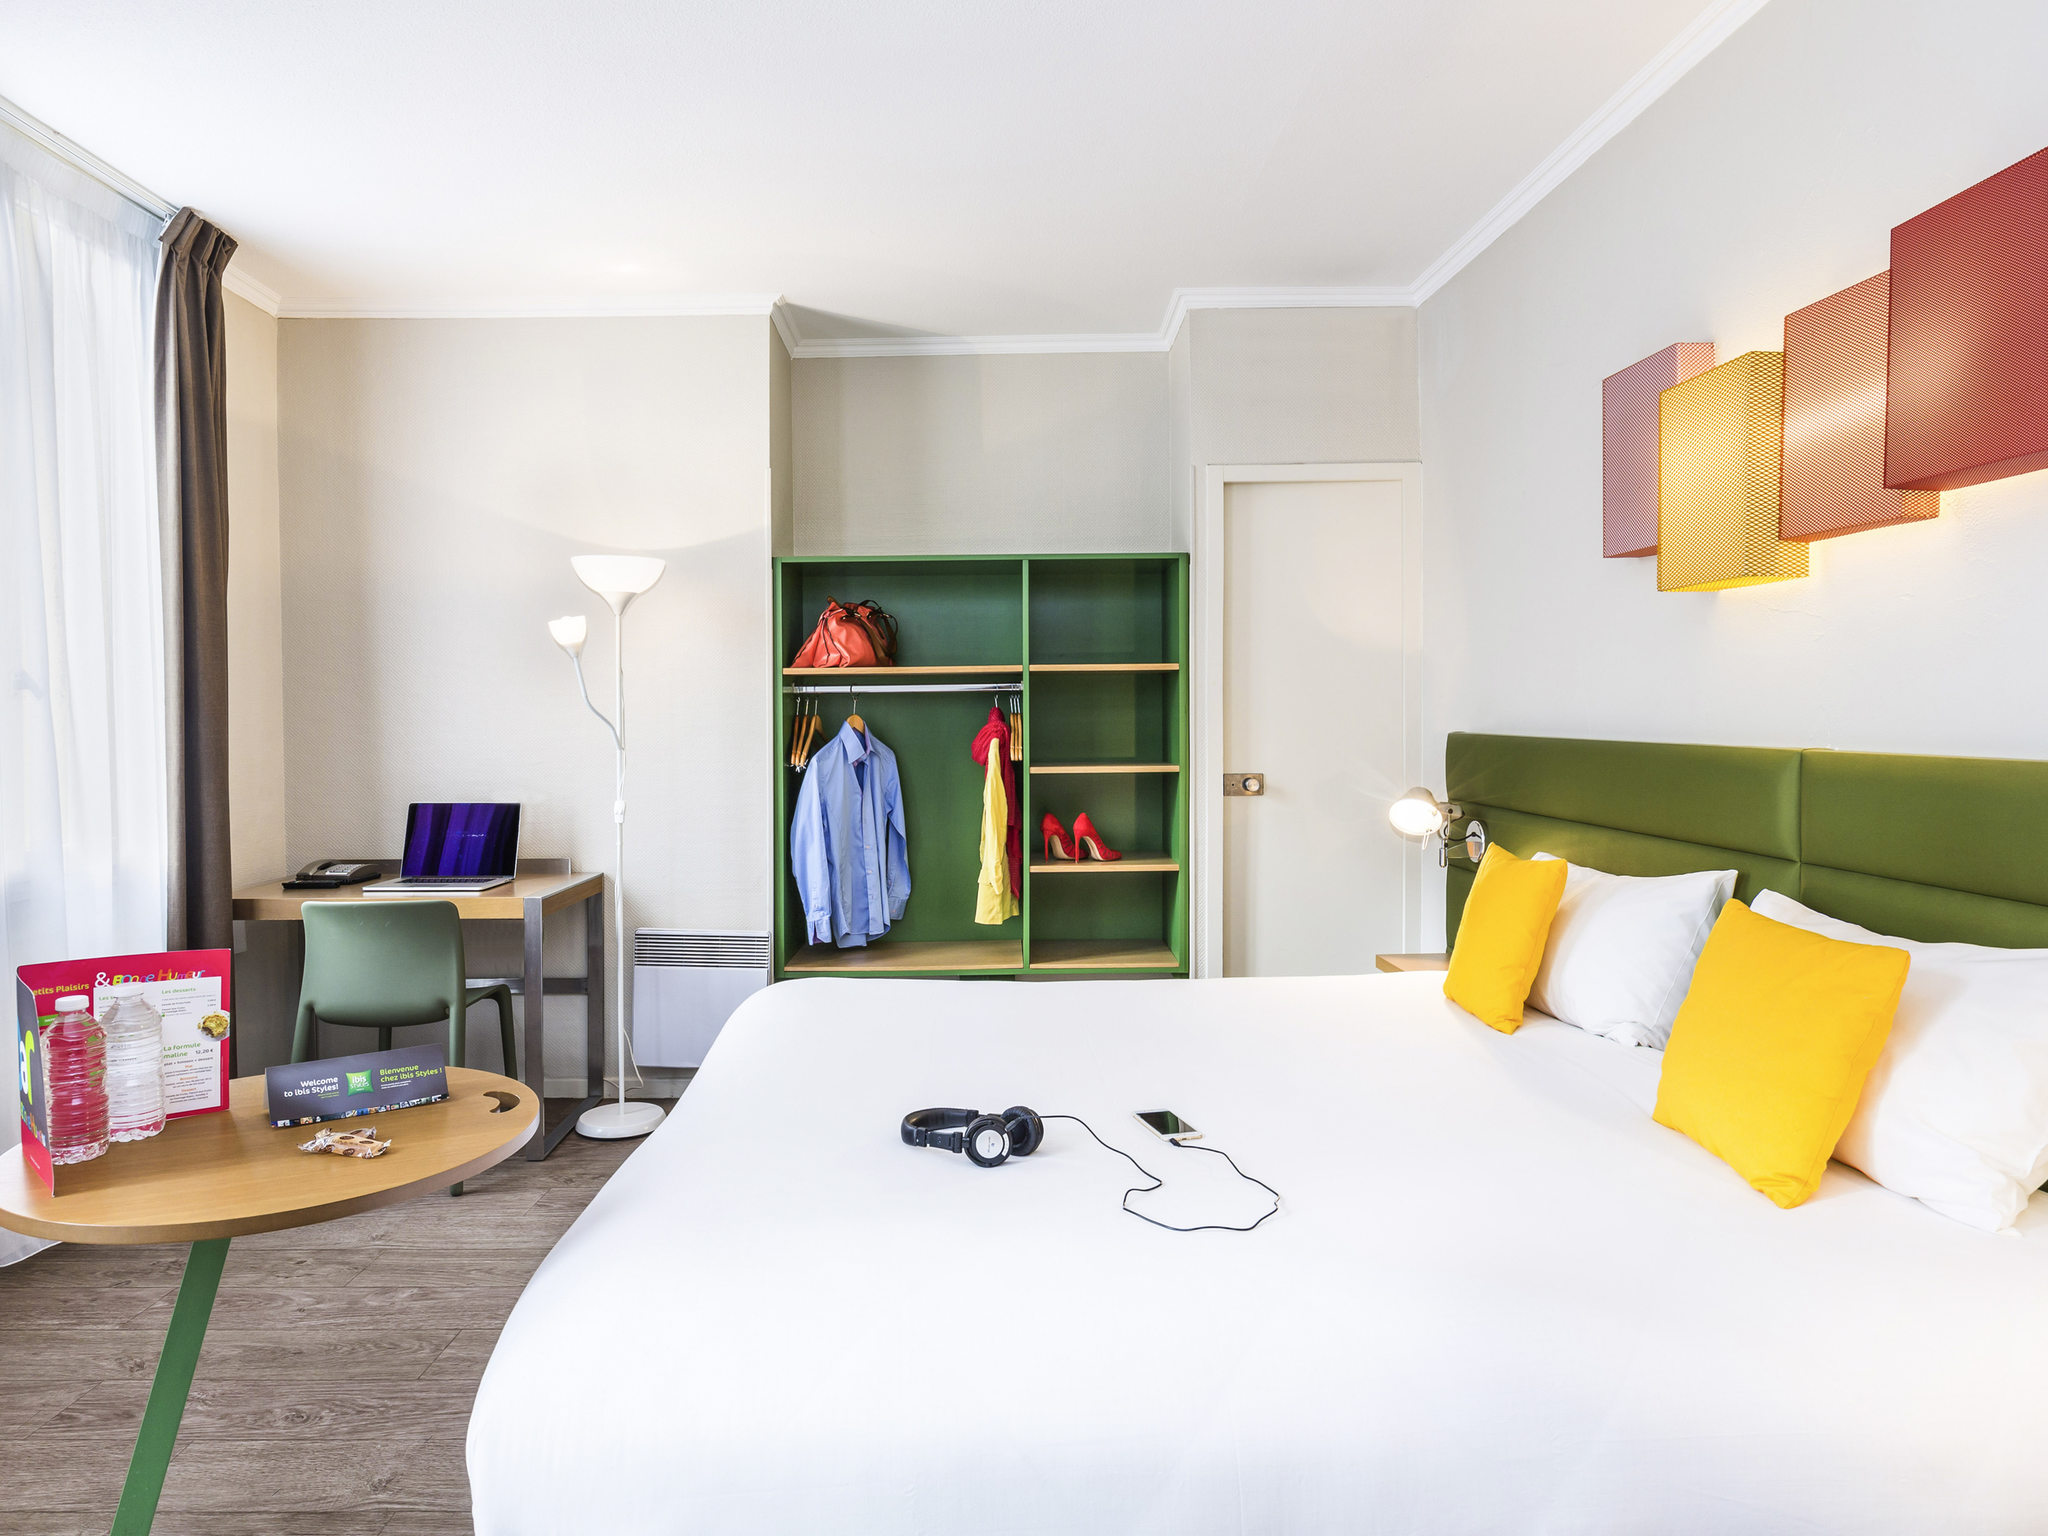 Hotel in toulouse ibis styles toulouse gare centre matabiau for Hotels toulouse centre